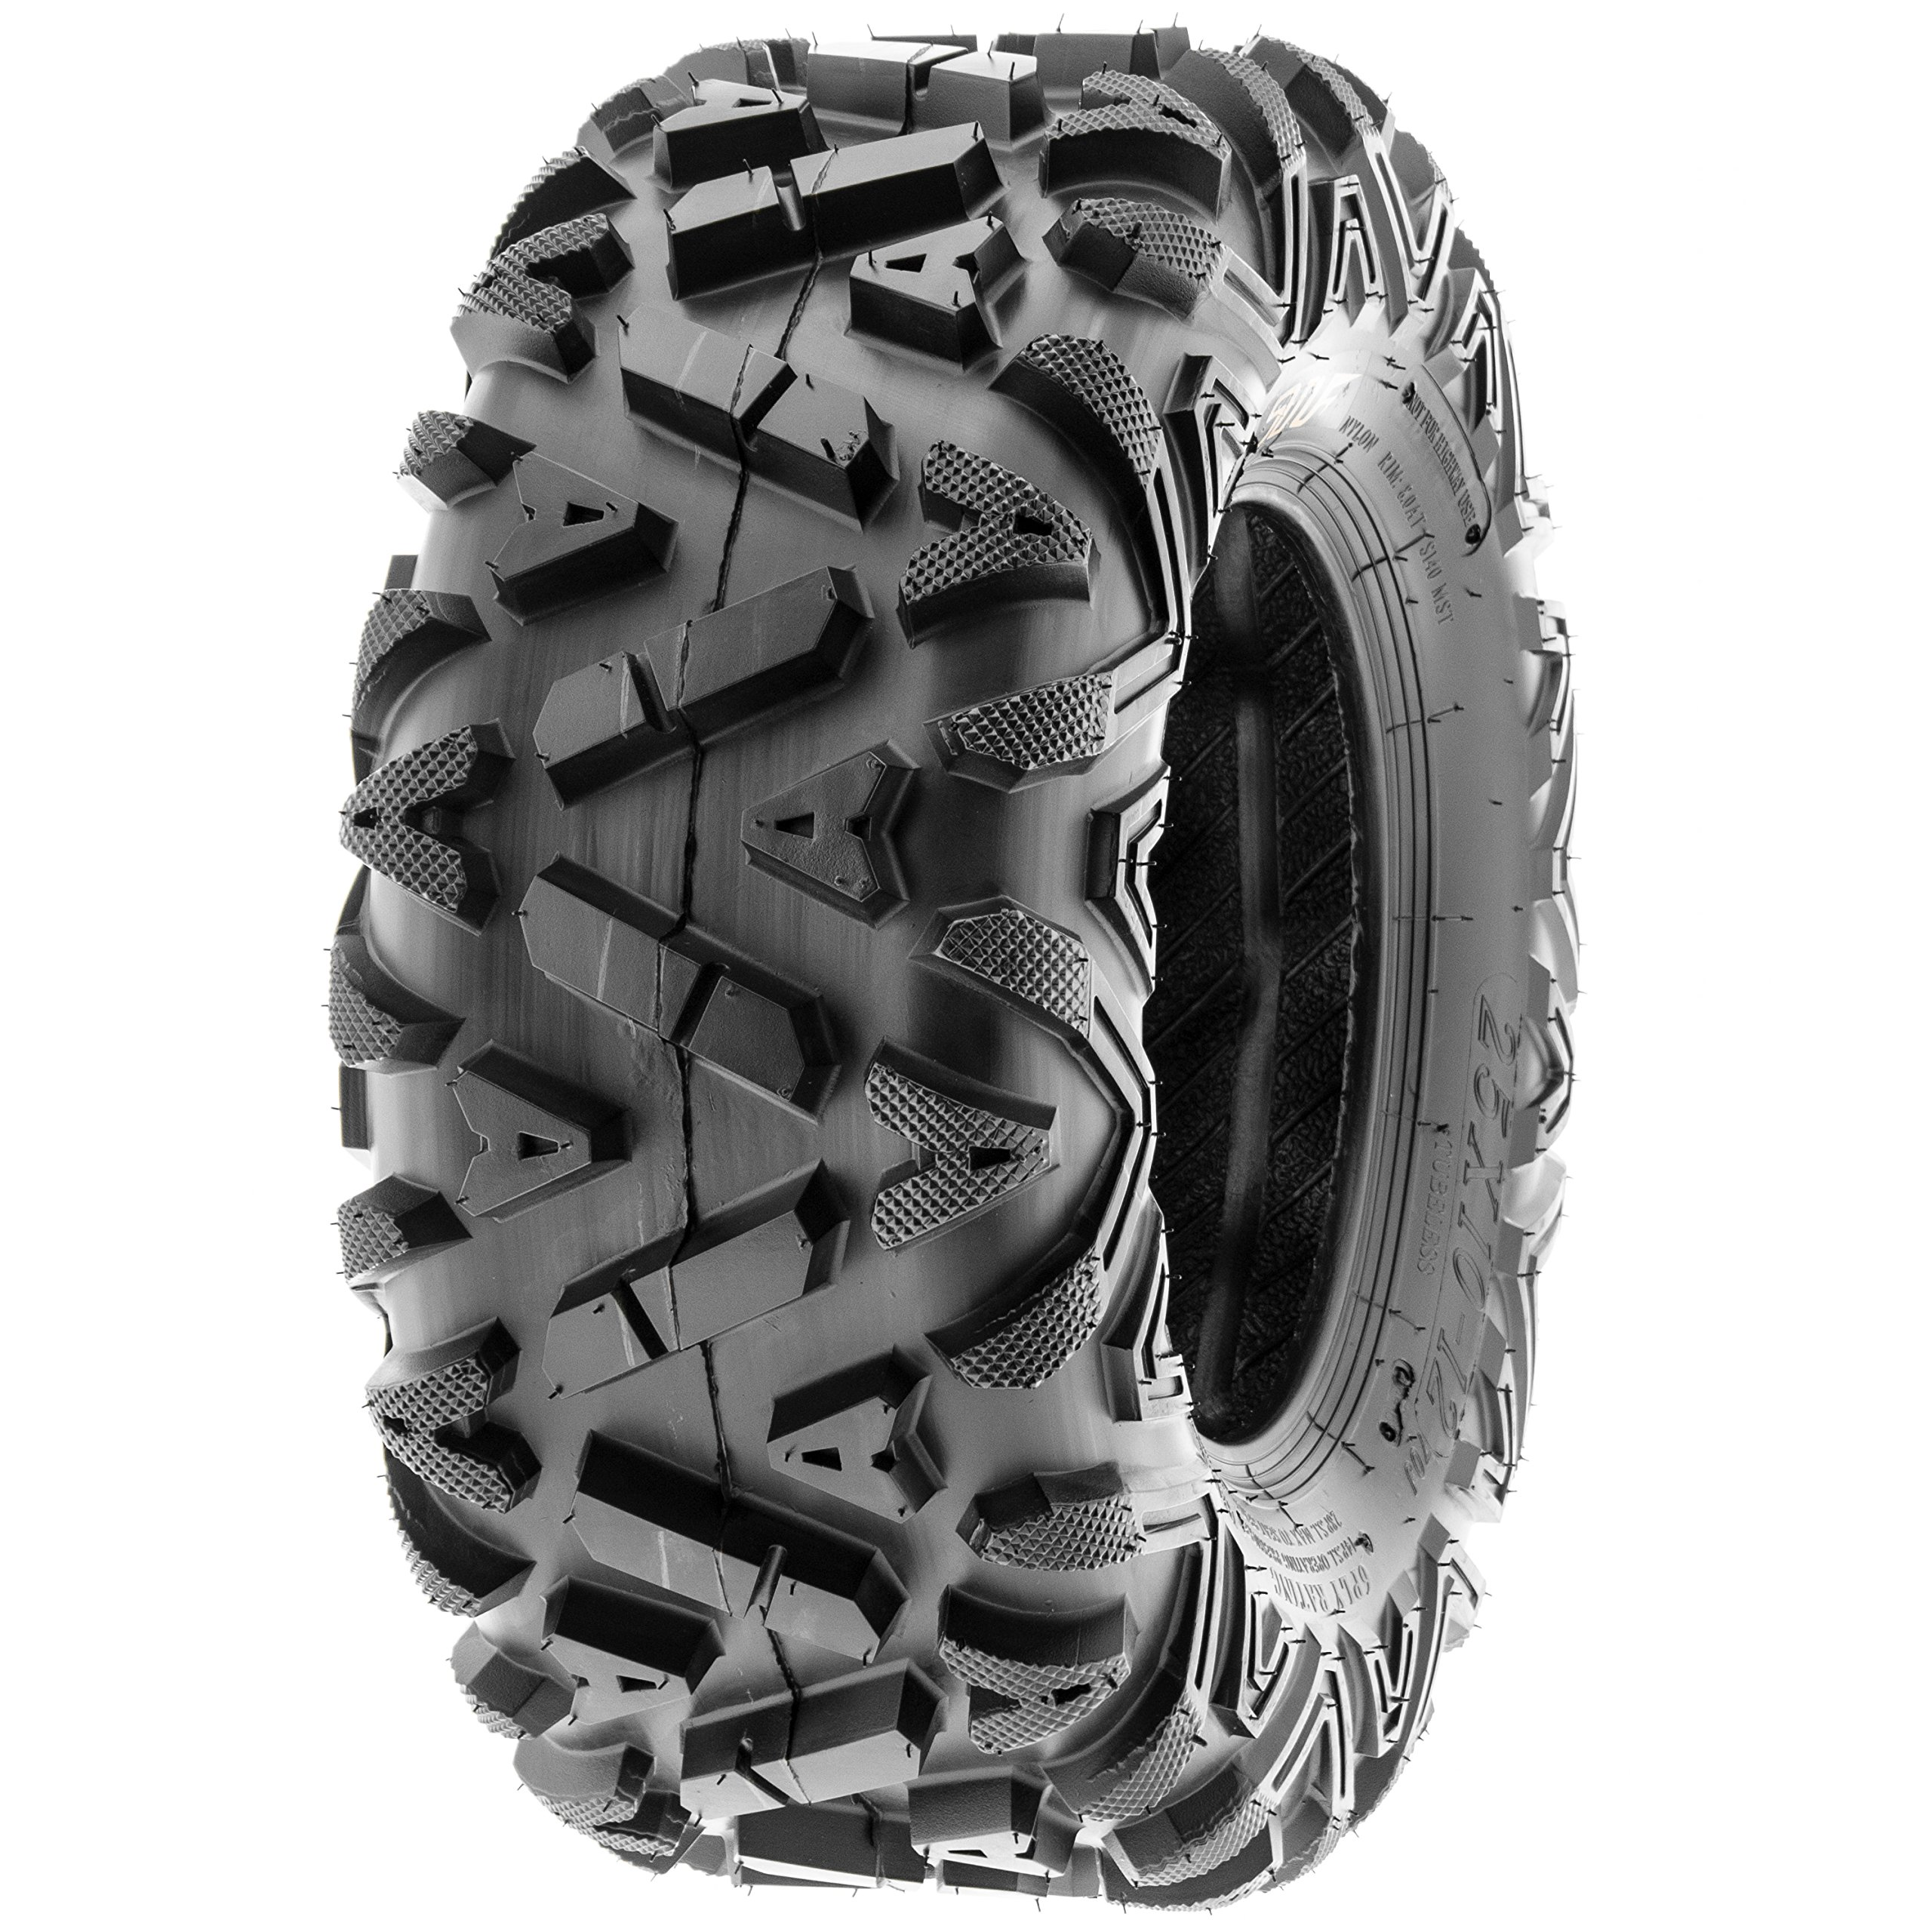 Pair of 2 SunF A033 Power.I AT 25x10-11 ATV UTV Off-Road Tires, All-Terrain, 6 PR, Tubeless by SUNF (Image #7)